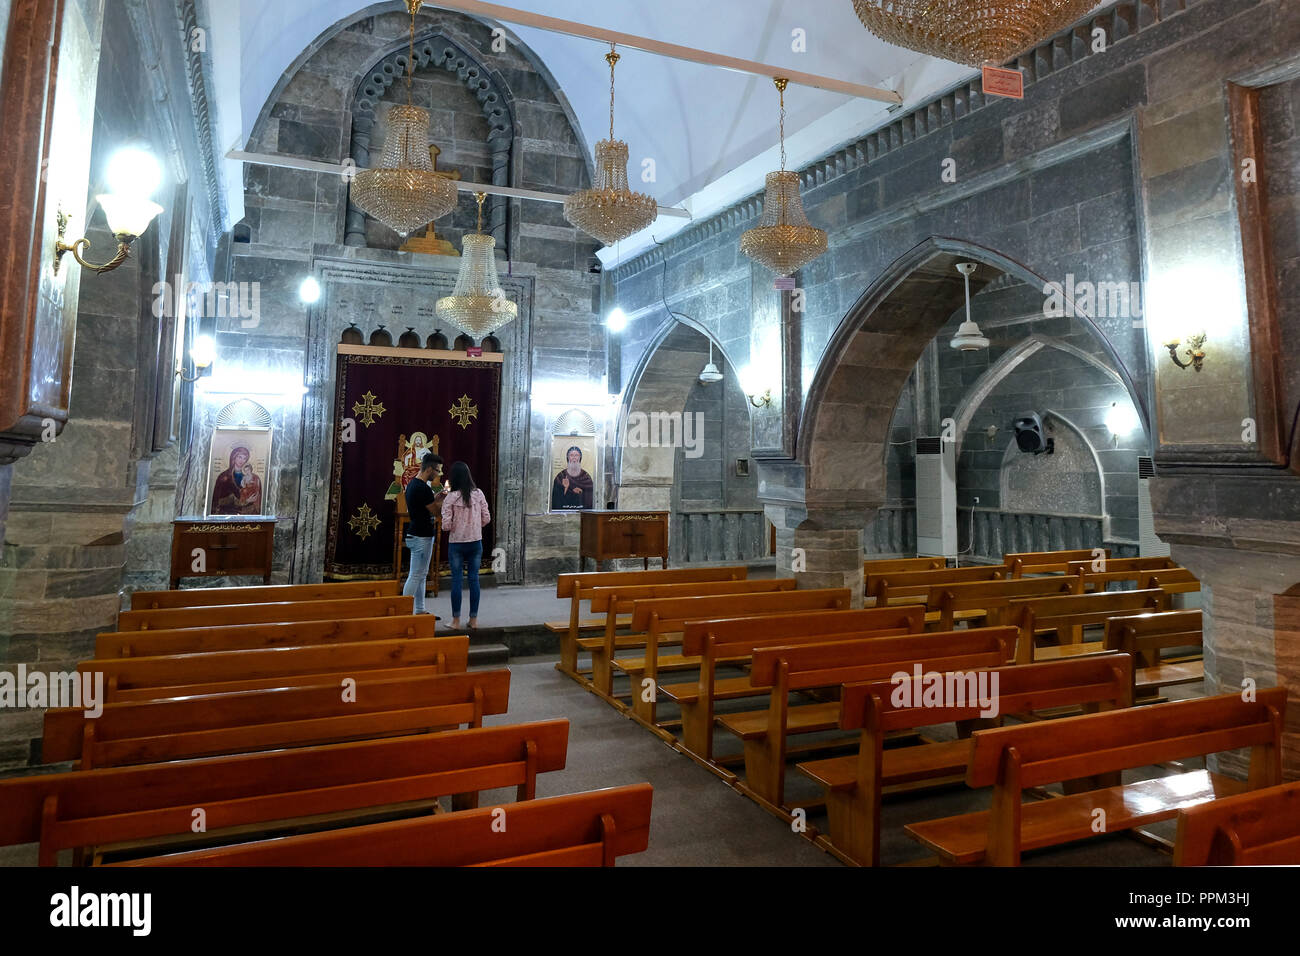 Syrian Orthodox Monastery Mar Mattai (St. Matthias Monastery) on the edge of the Nineve Plain - Syrisch-orthodoxes Kloster Mar Mattai (St. Matthias-Kloster) am Rande der Nineve-Ebene Stock Photo